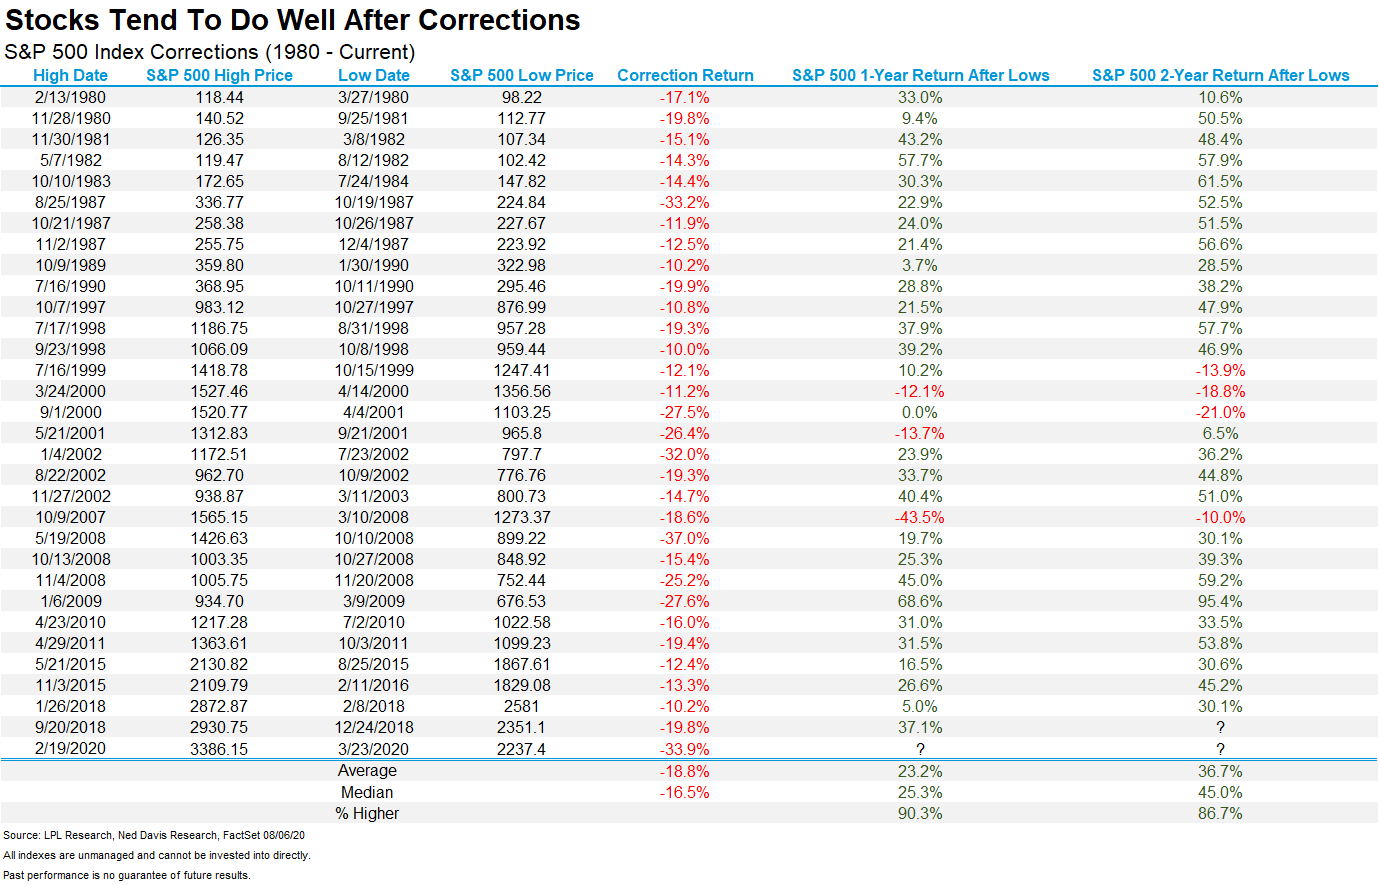 stocks tend to do well after corrections